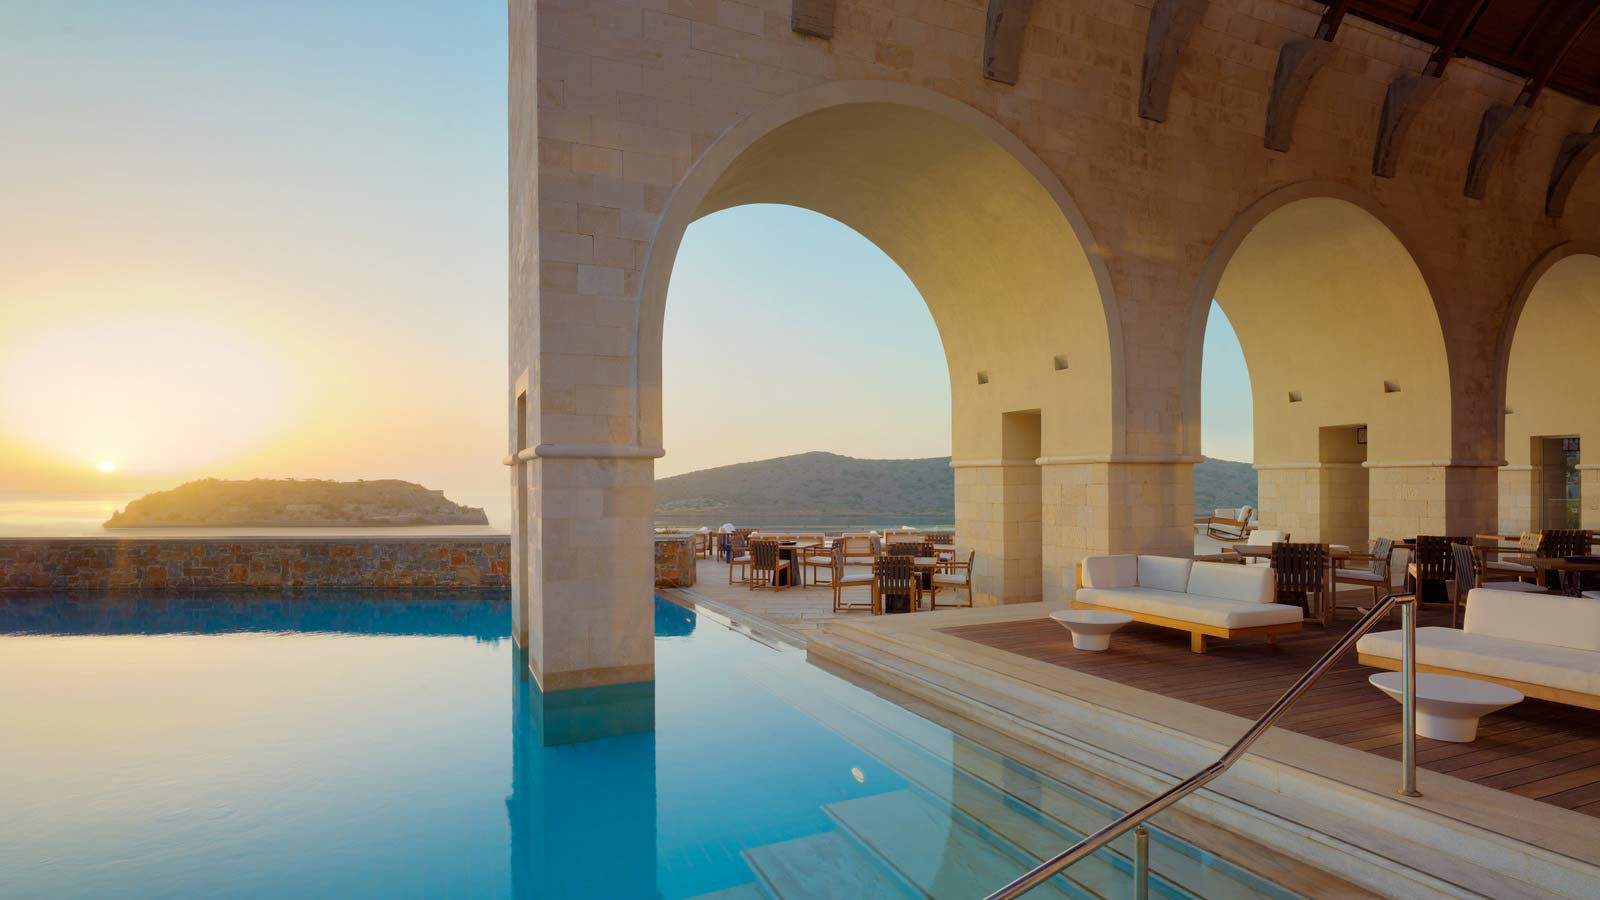 Arsenali Lounge - Blue palace resort and spa - Elounda, Crete, Grece